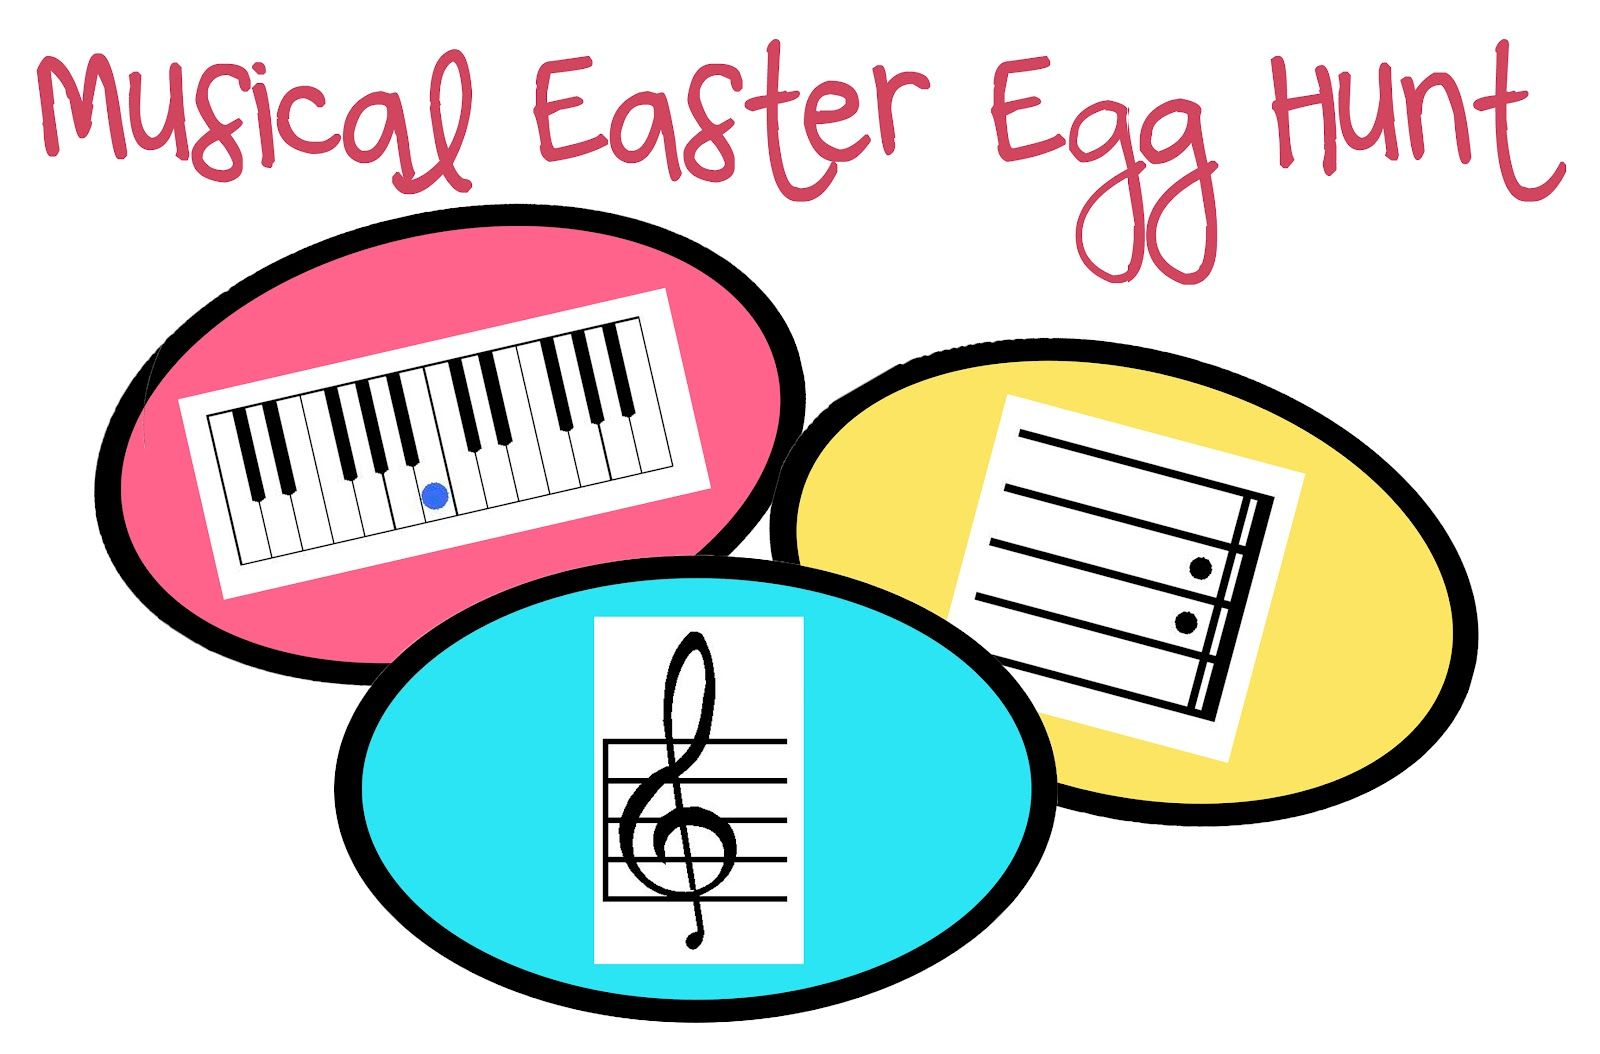 New Printable Musical Easter Egg Hunt With Images